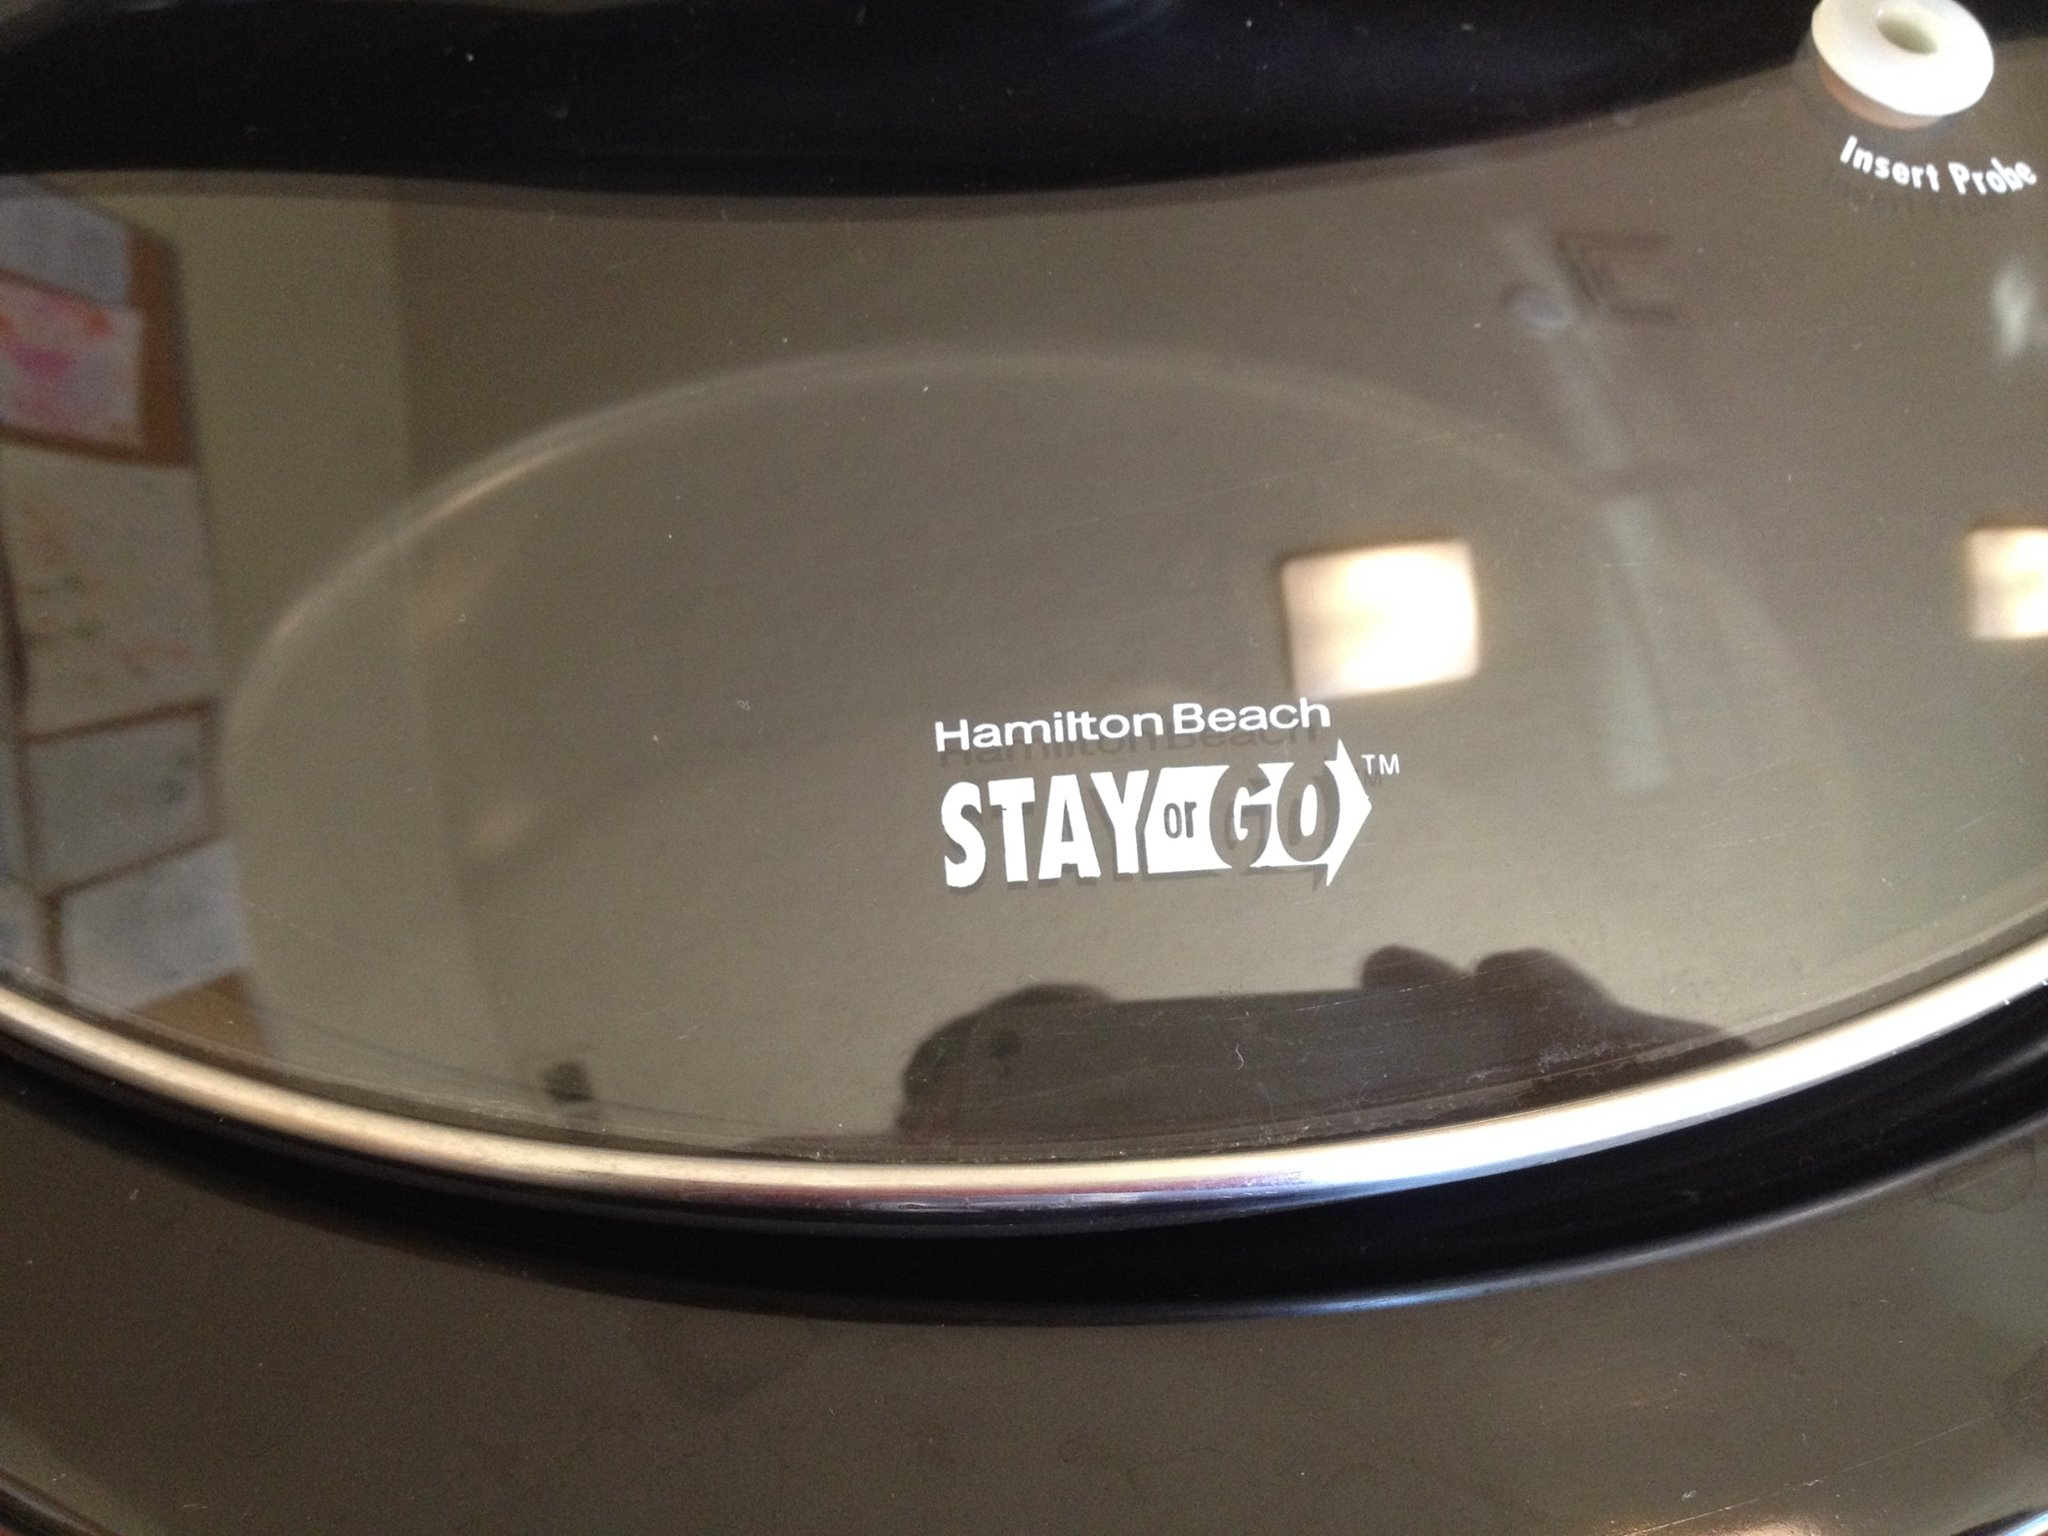 Hamilton Beach Stay-or-Go Crock Pot White Painted Logo On Glass Lid: 9,866 ppm Lead